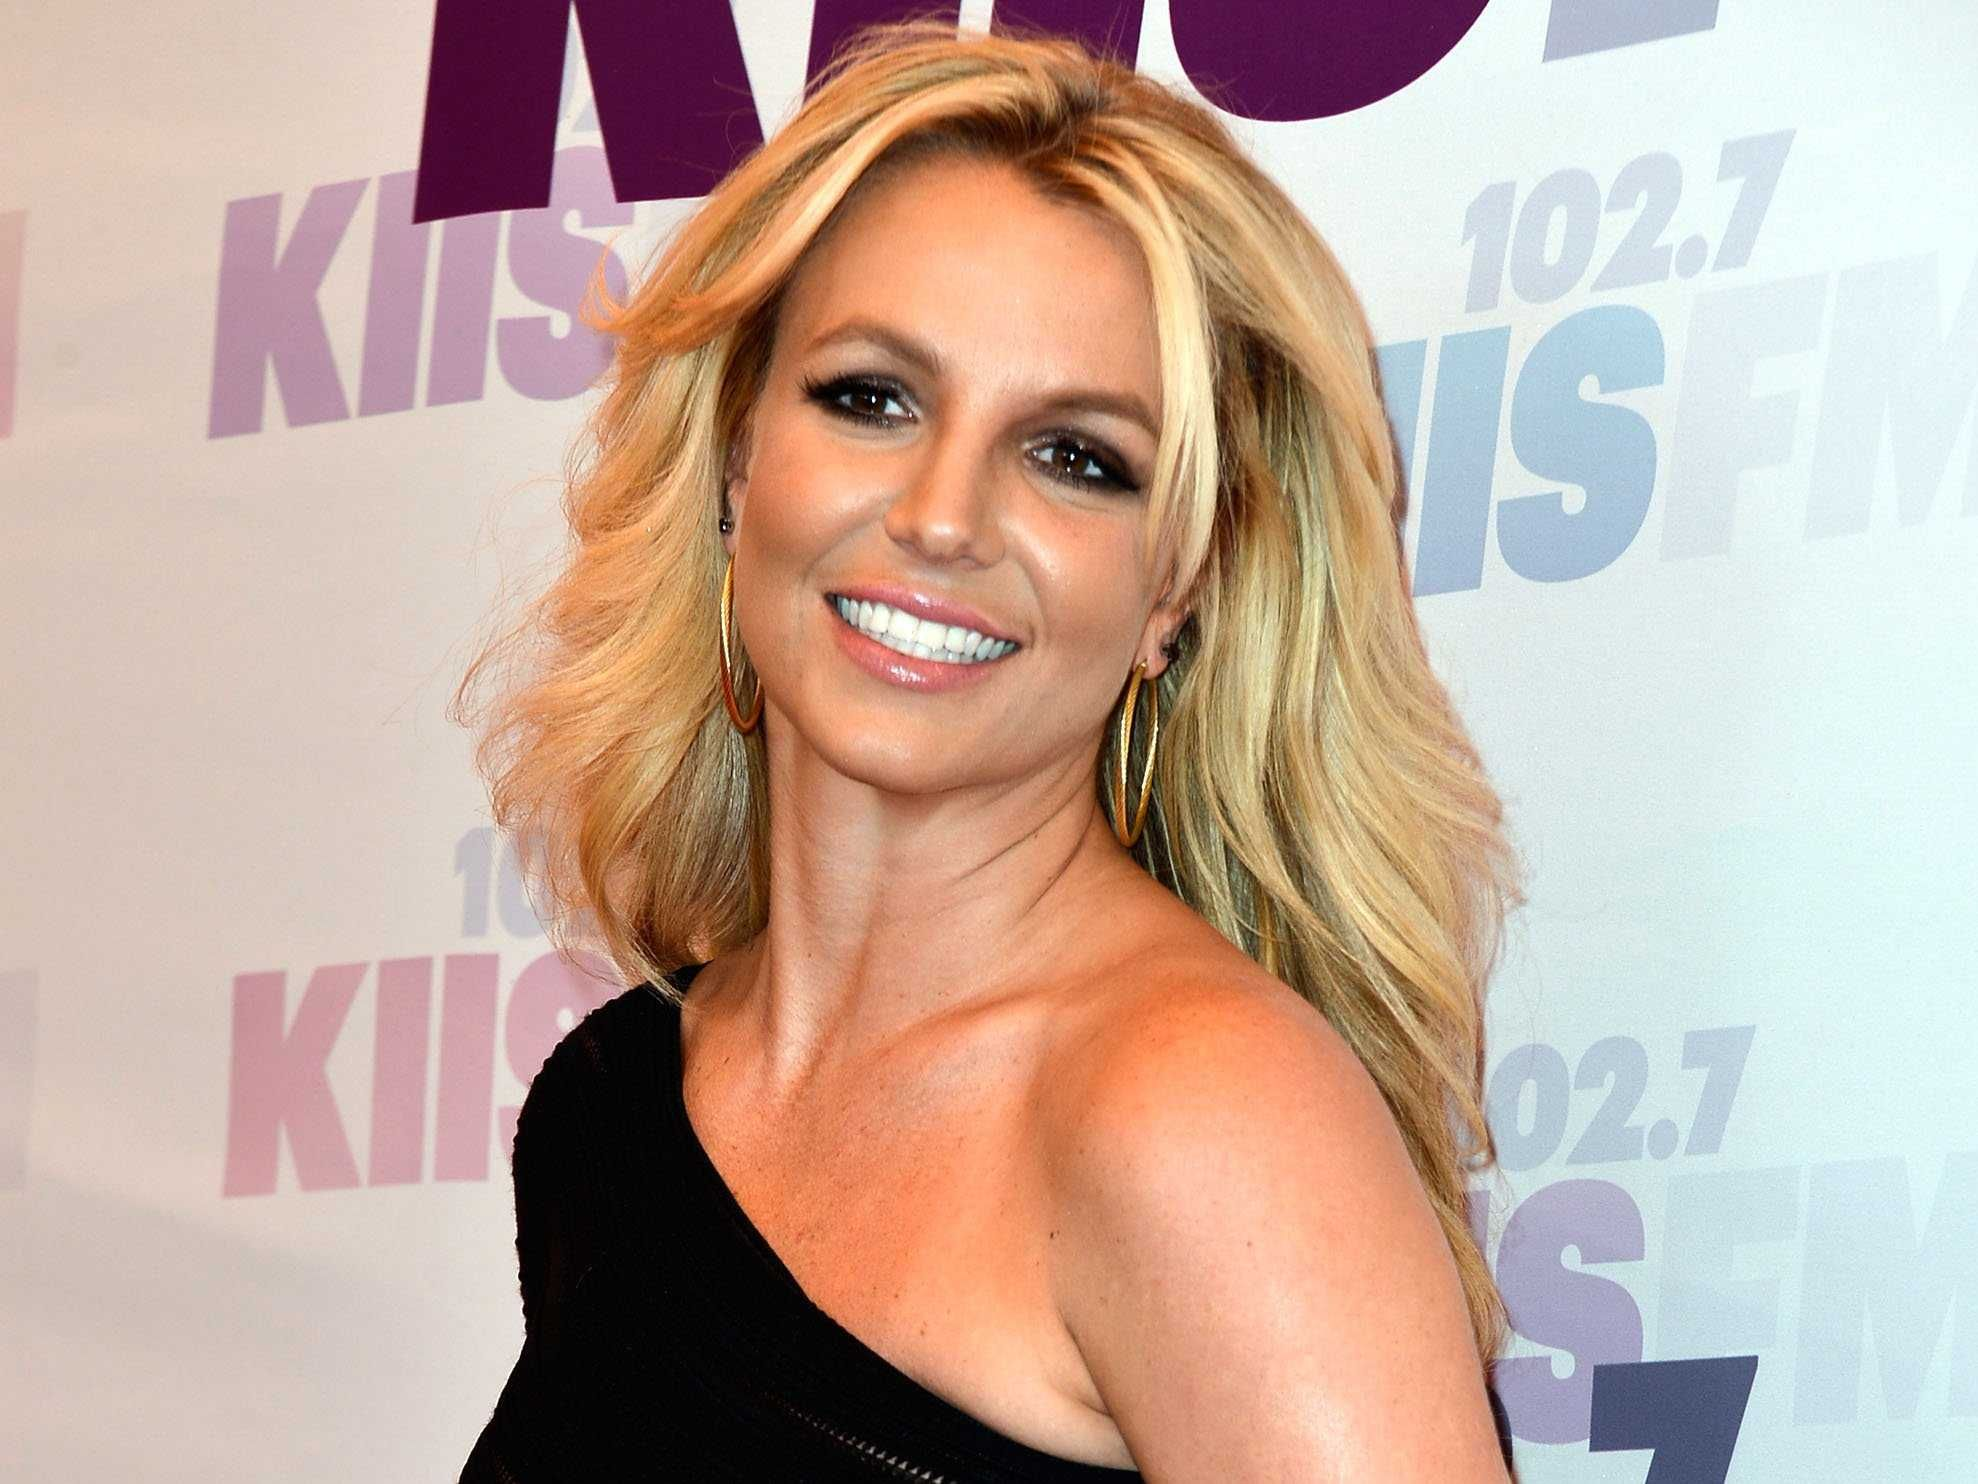 Britney spears photos purchase by online casino euro 2012 gambling